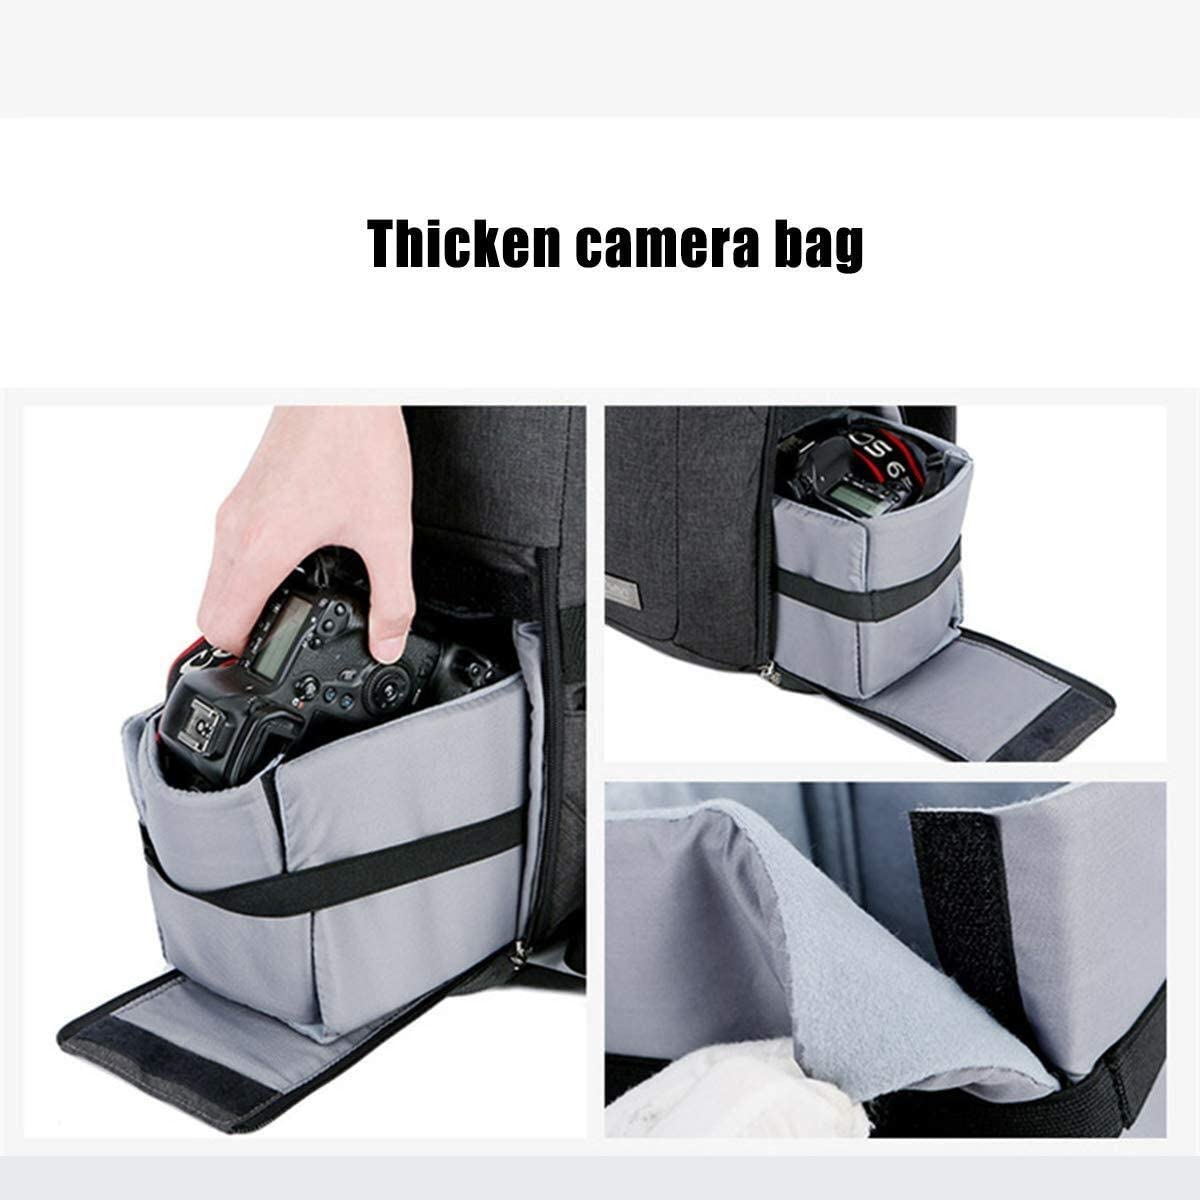 30 X 14 X 42 cm Black Well-Made Nuanxingjiafang Stylish Multi-Functional SLR Camera Bag for Camera Backpack Tripod and Lens